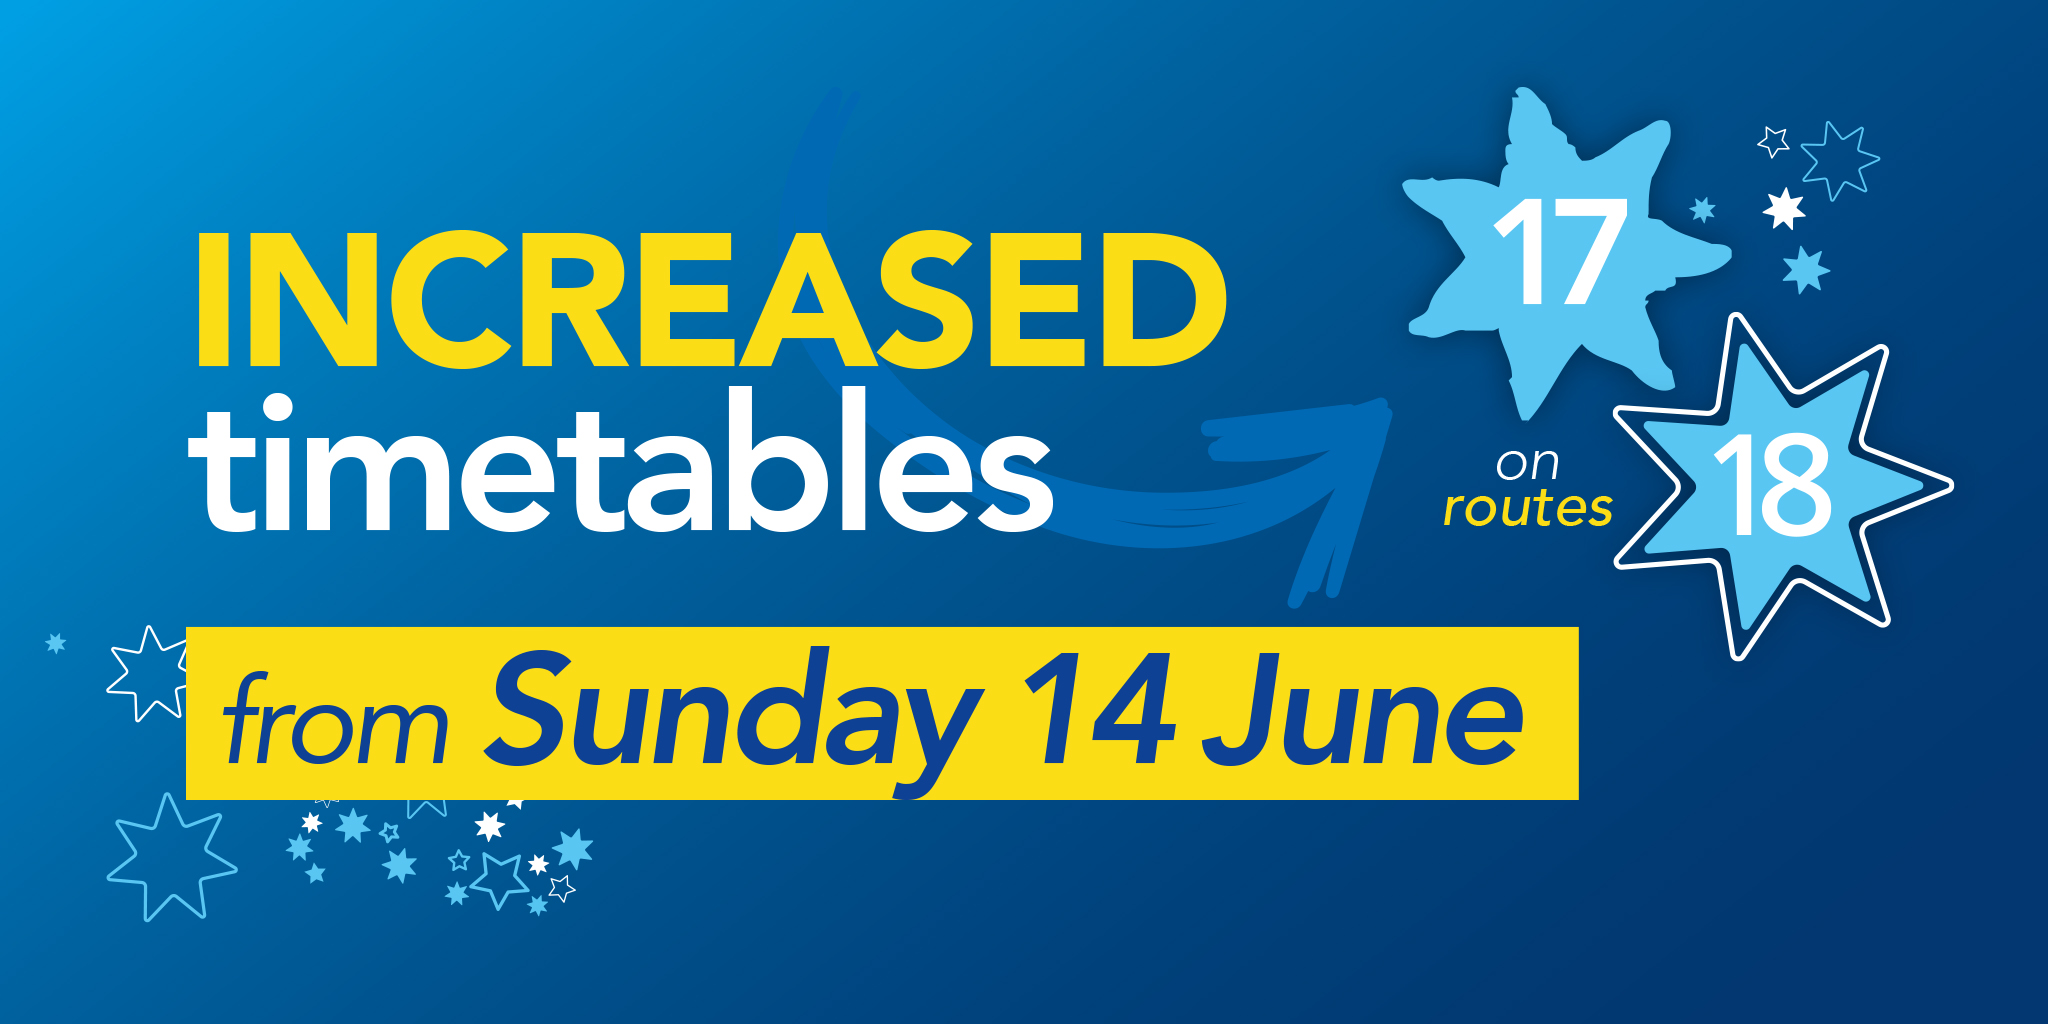 Image reading 'Increased timetables from Sunday 14 June on routes 17 and 18'